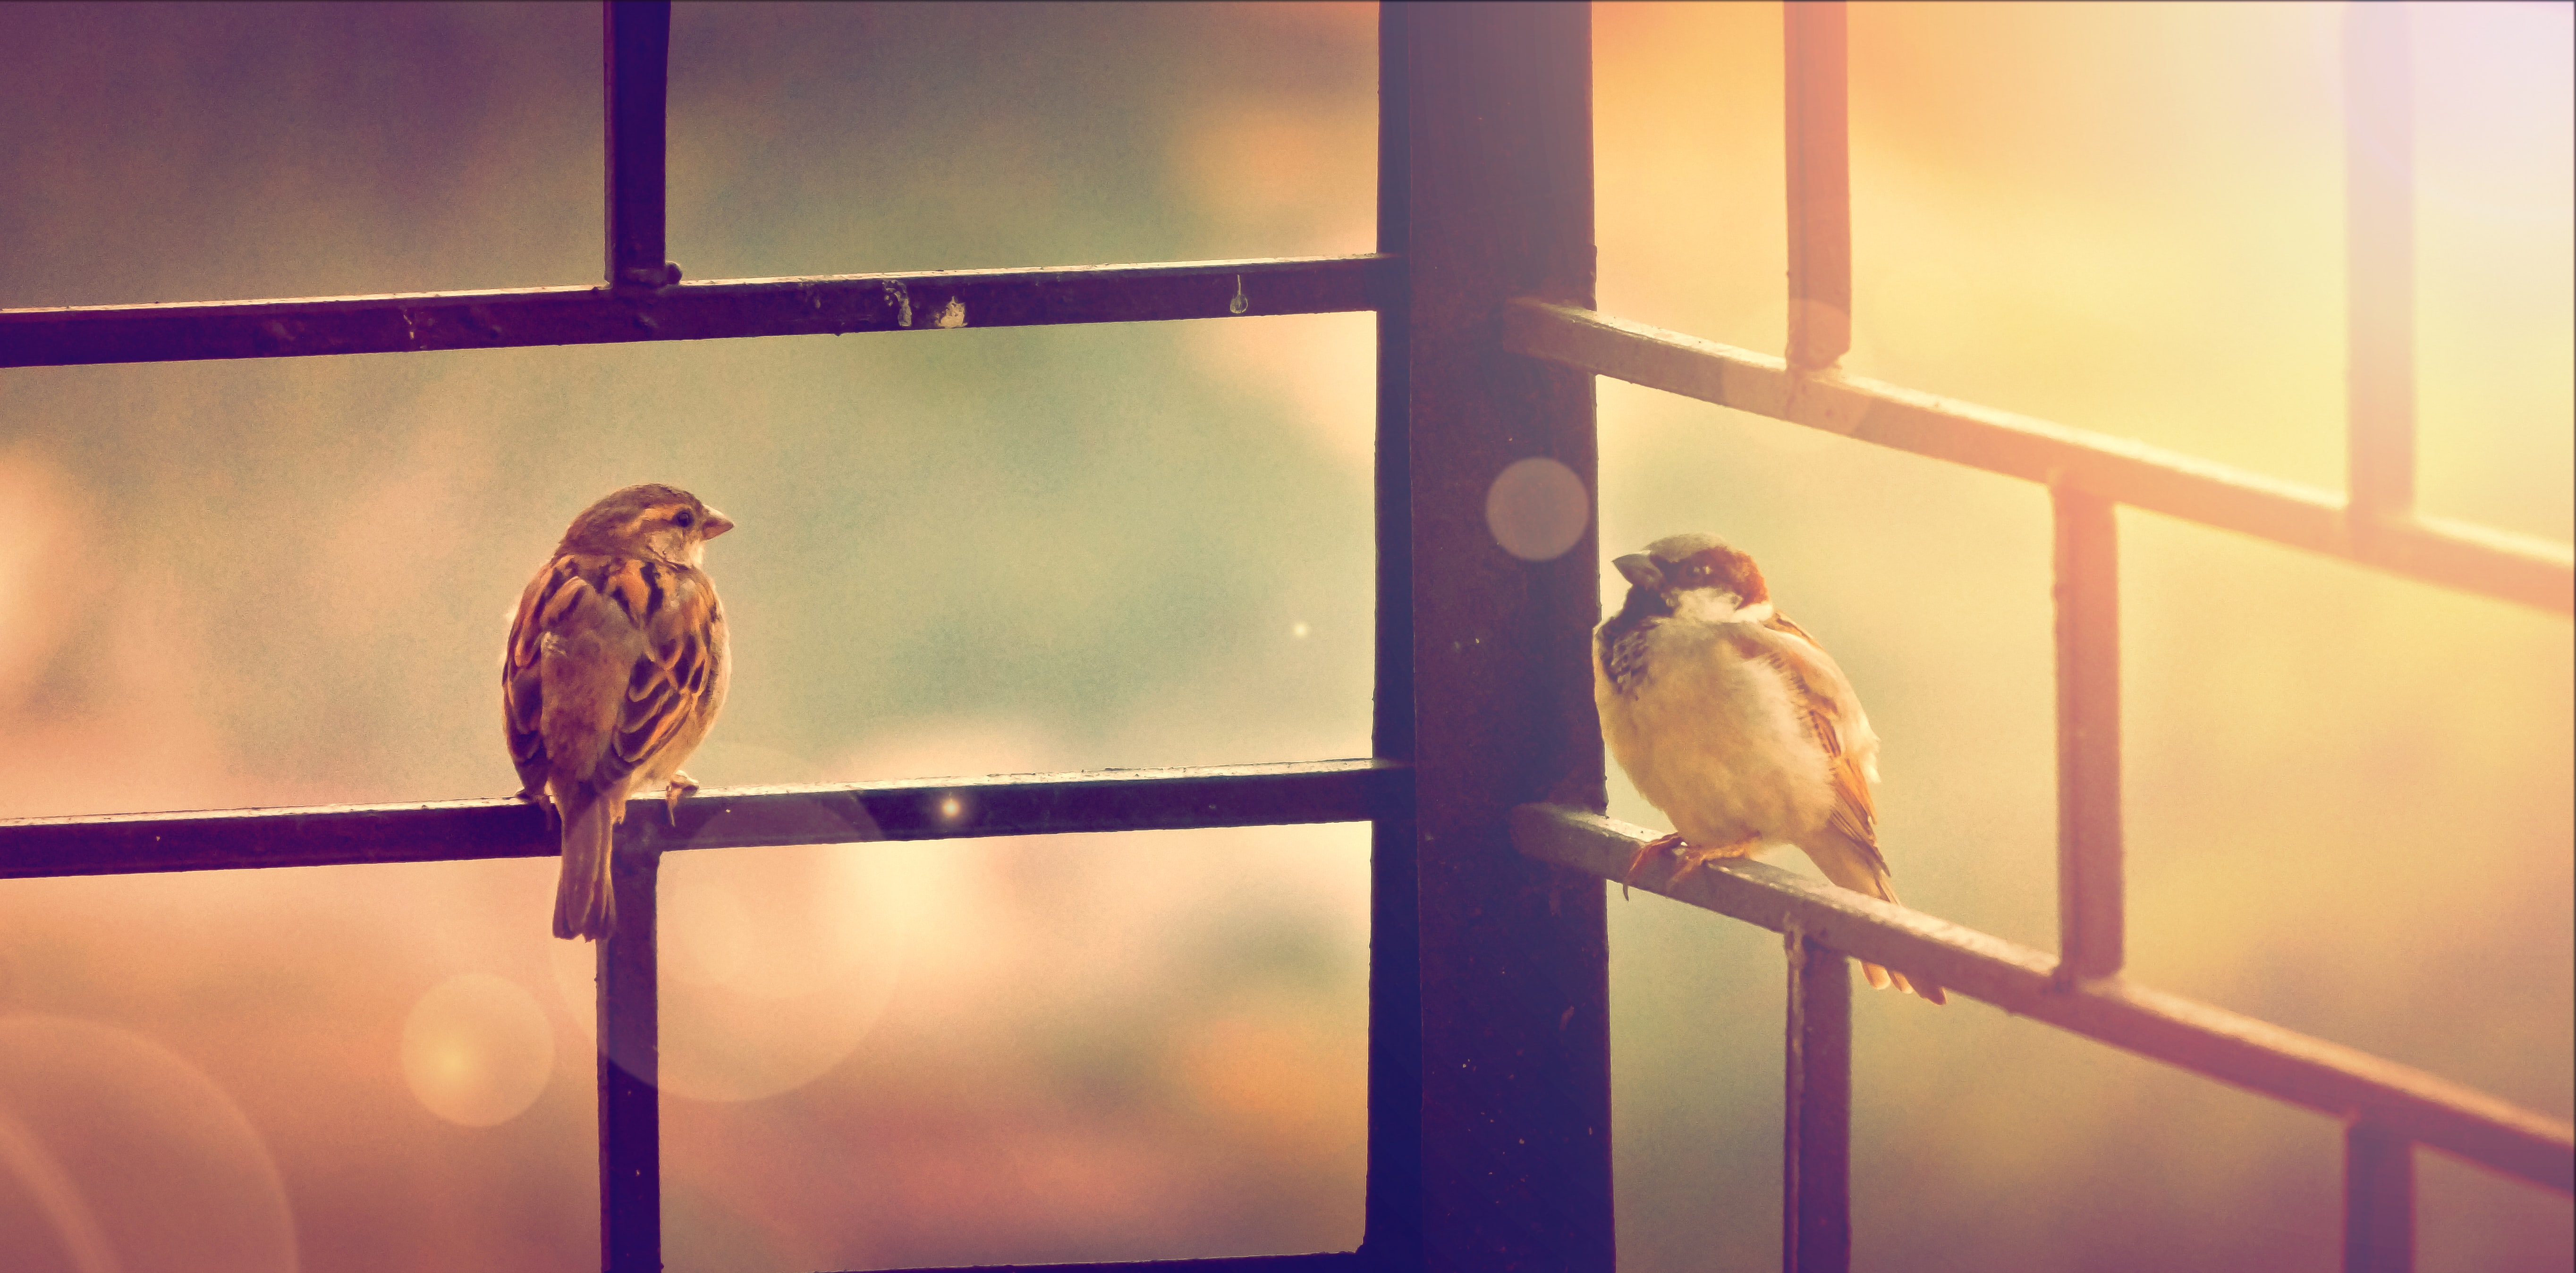 Two sparrows sitting on a black fence railing against a blurry green and orange background